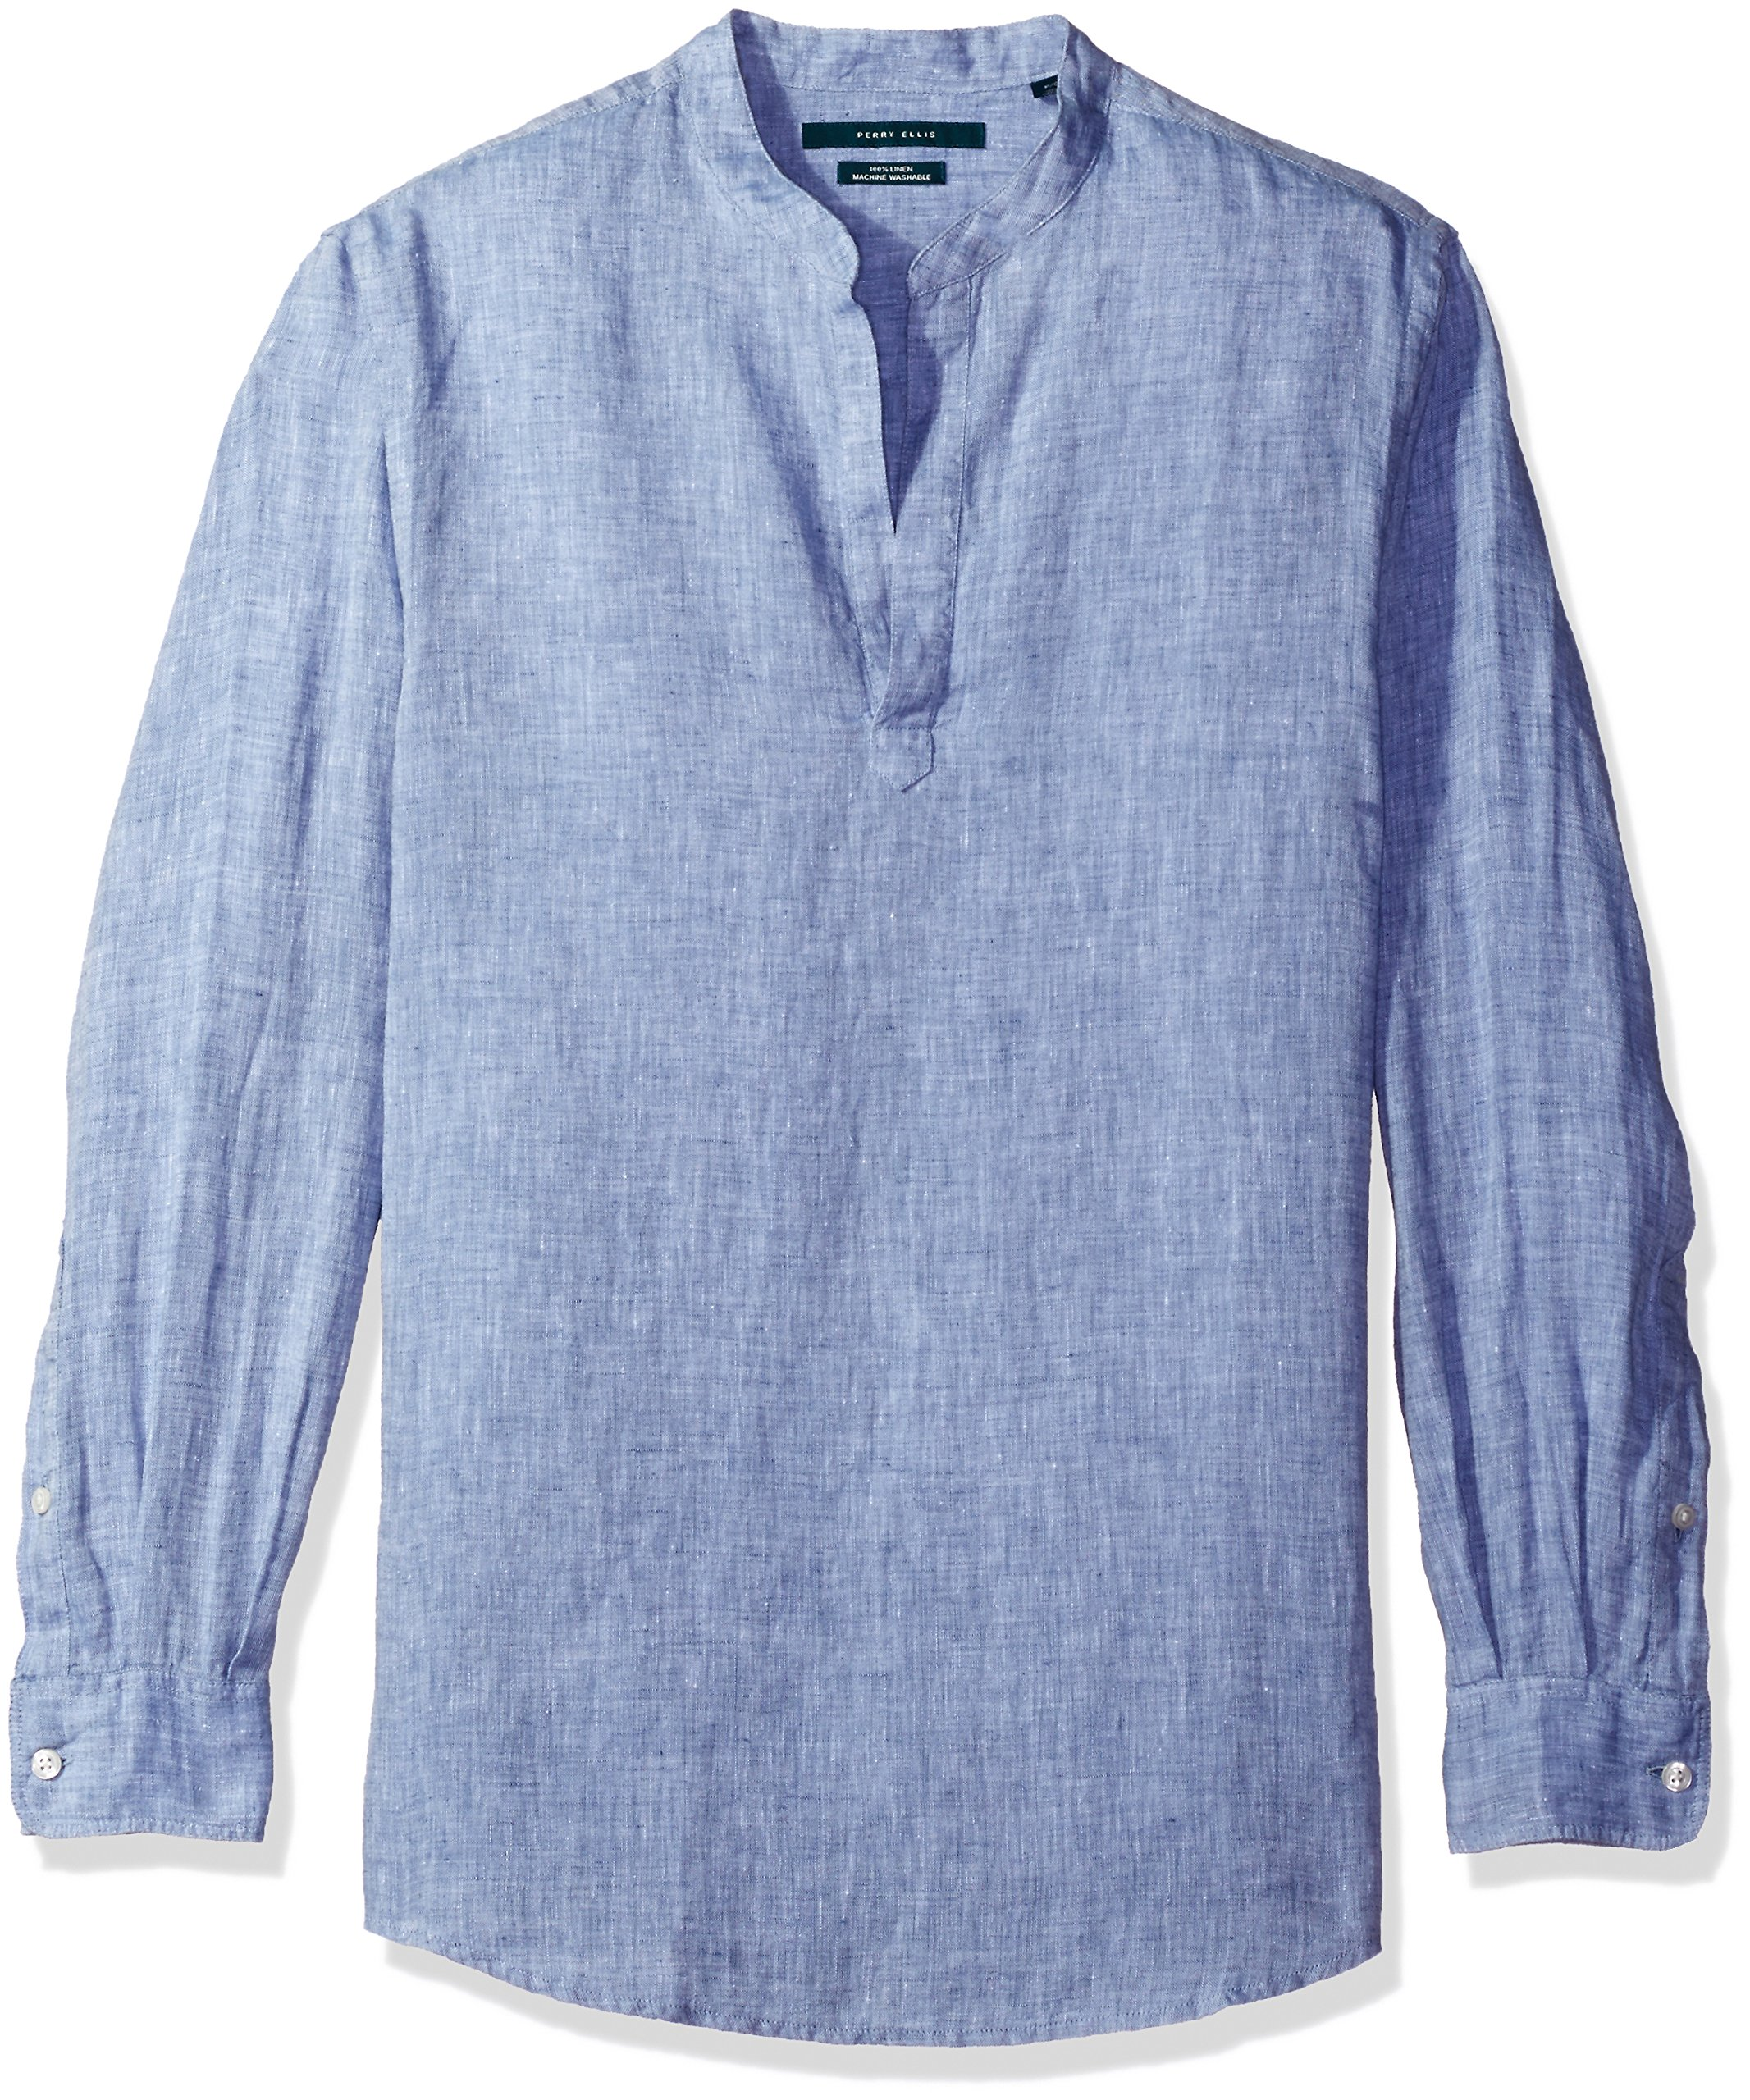 Perry Ellis Men's Long-Sleeve Solid Linen Popover Shirt, Colony Blue, Extra Extra Large